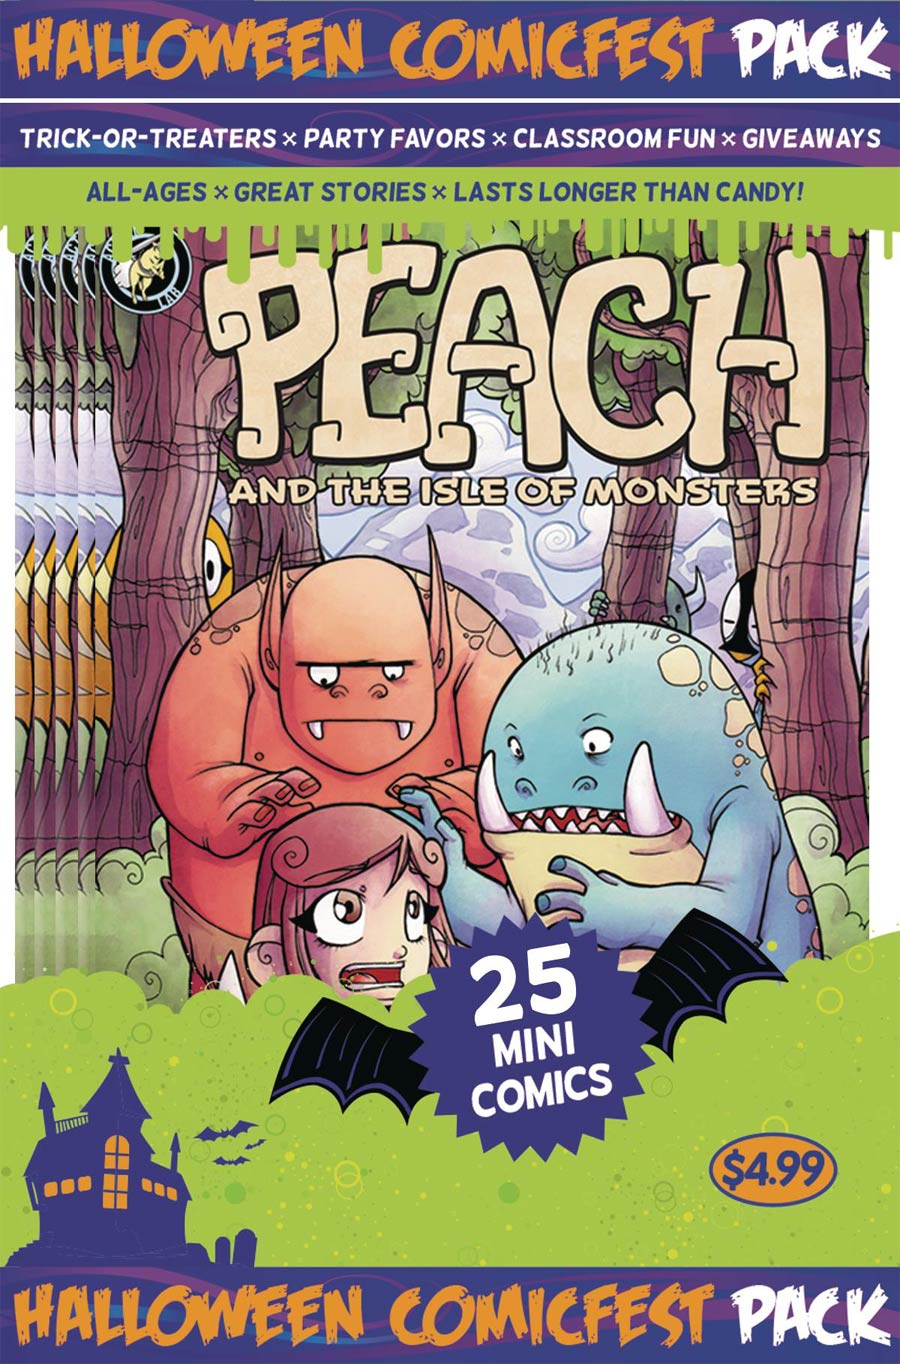 HCF 2016 Peach And The Isle Of Monsters Mini Comic Polypack (25-Copy Bundle)